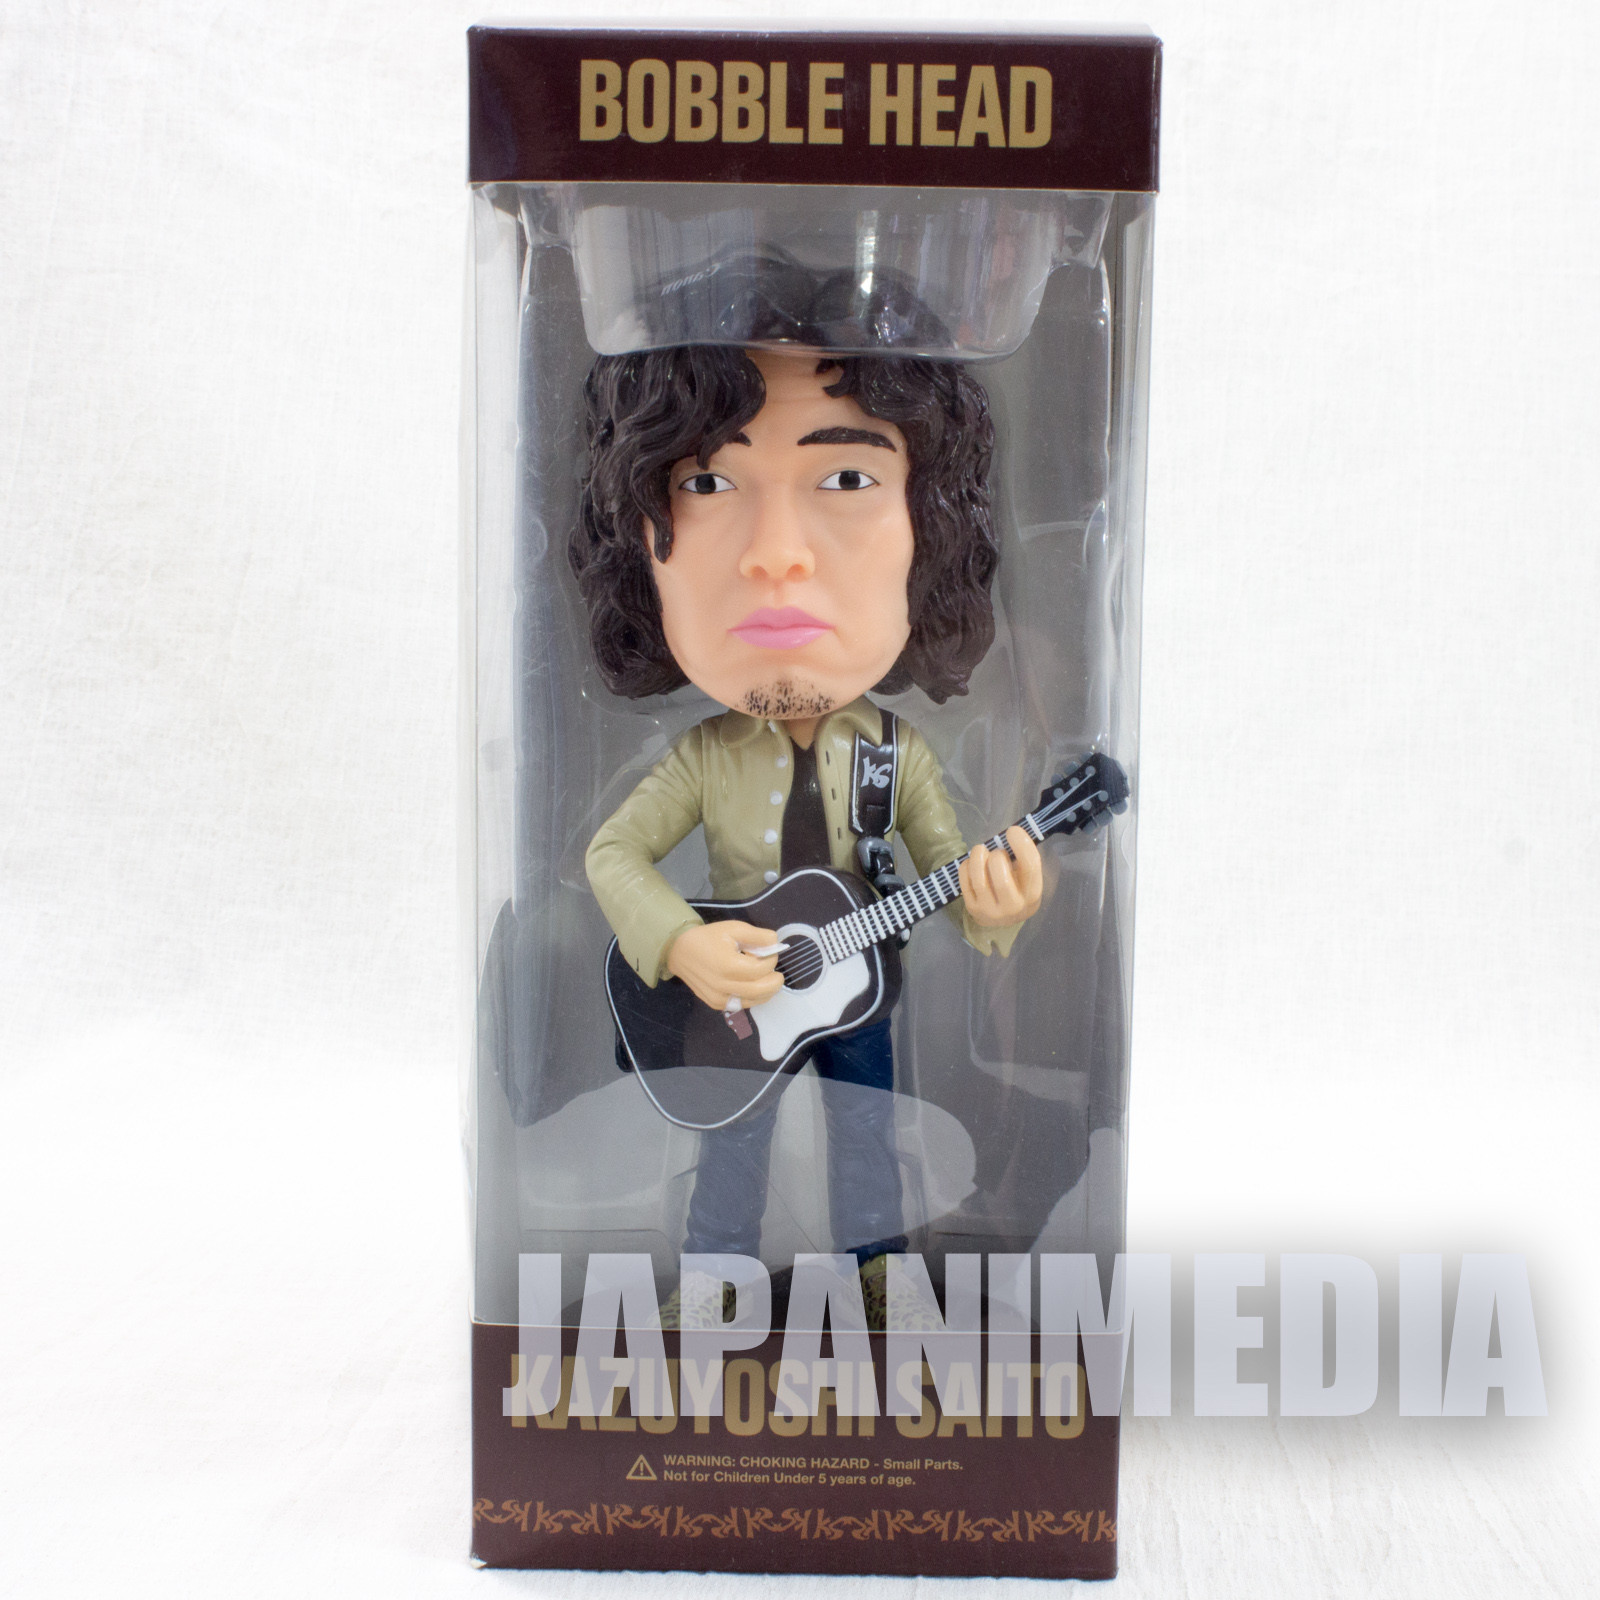 Kazuyoshi Saito Bobble Head Figure JAPAN BOBBIN